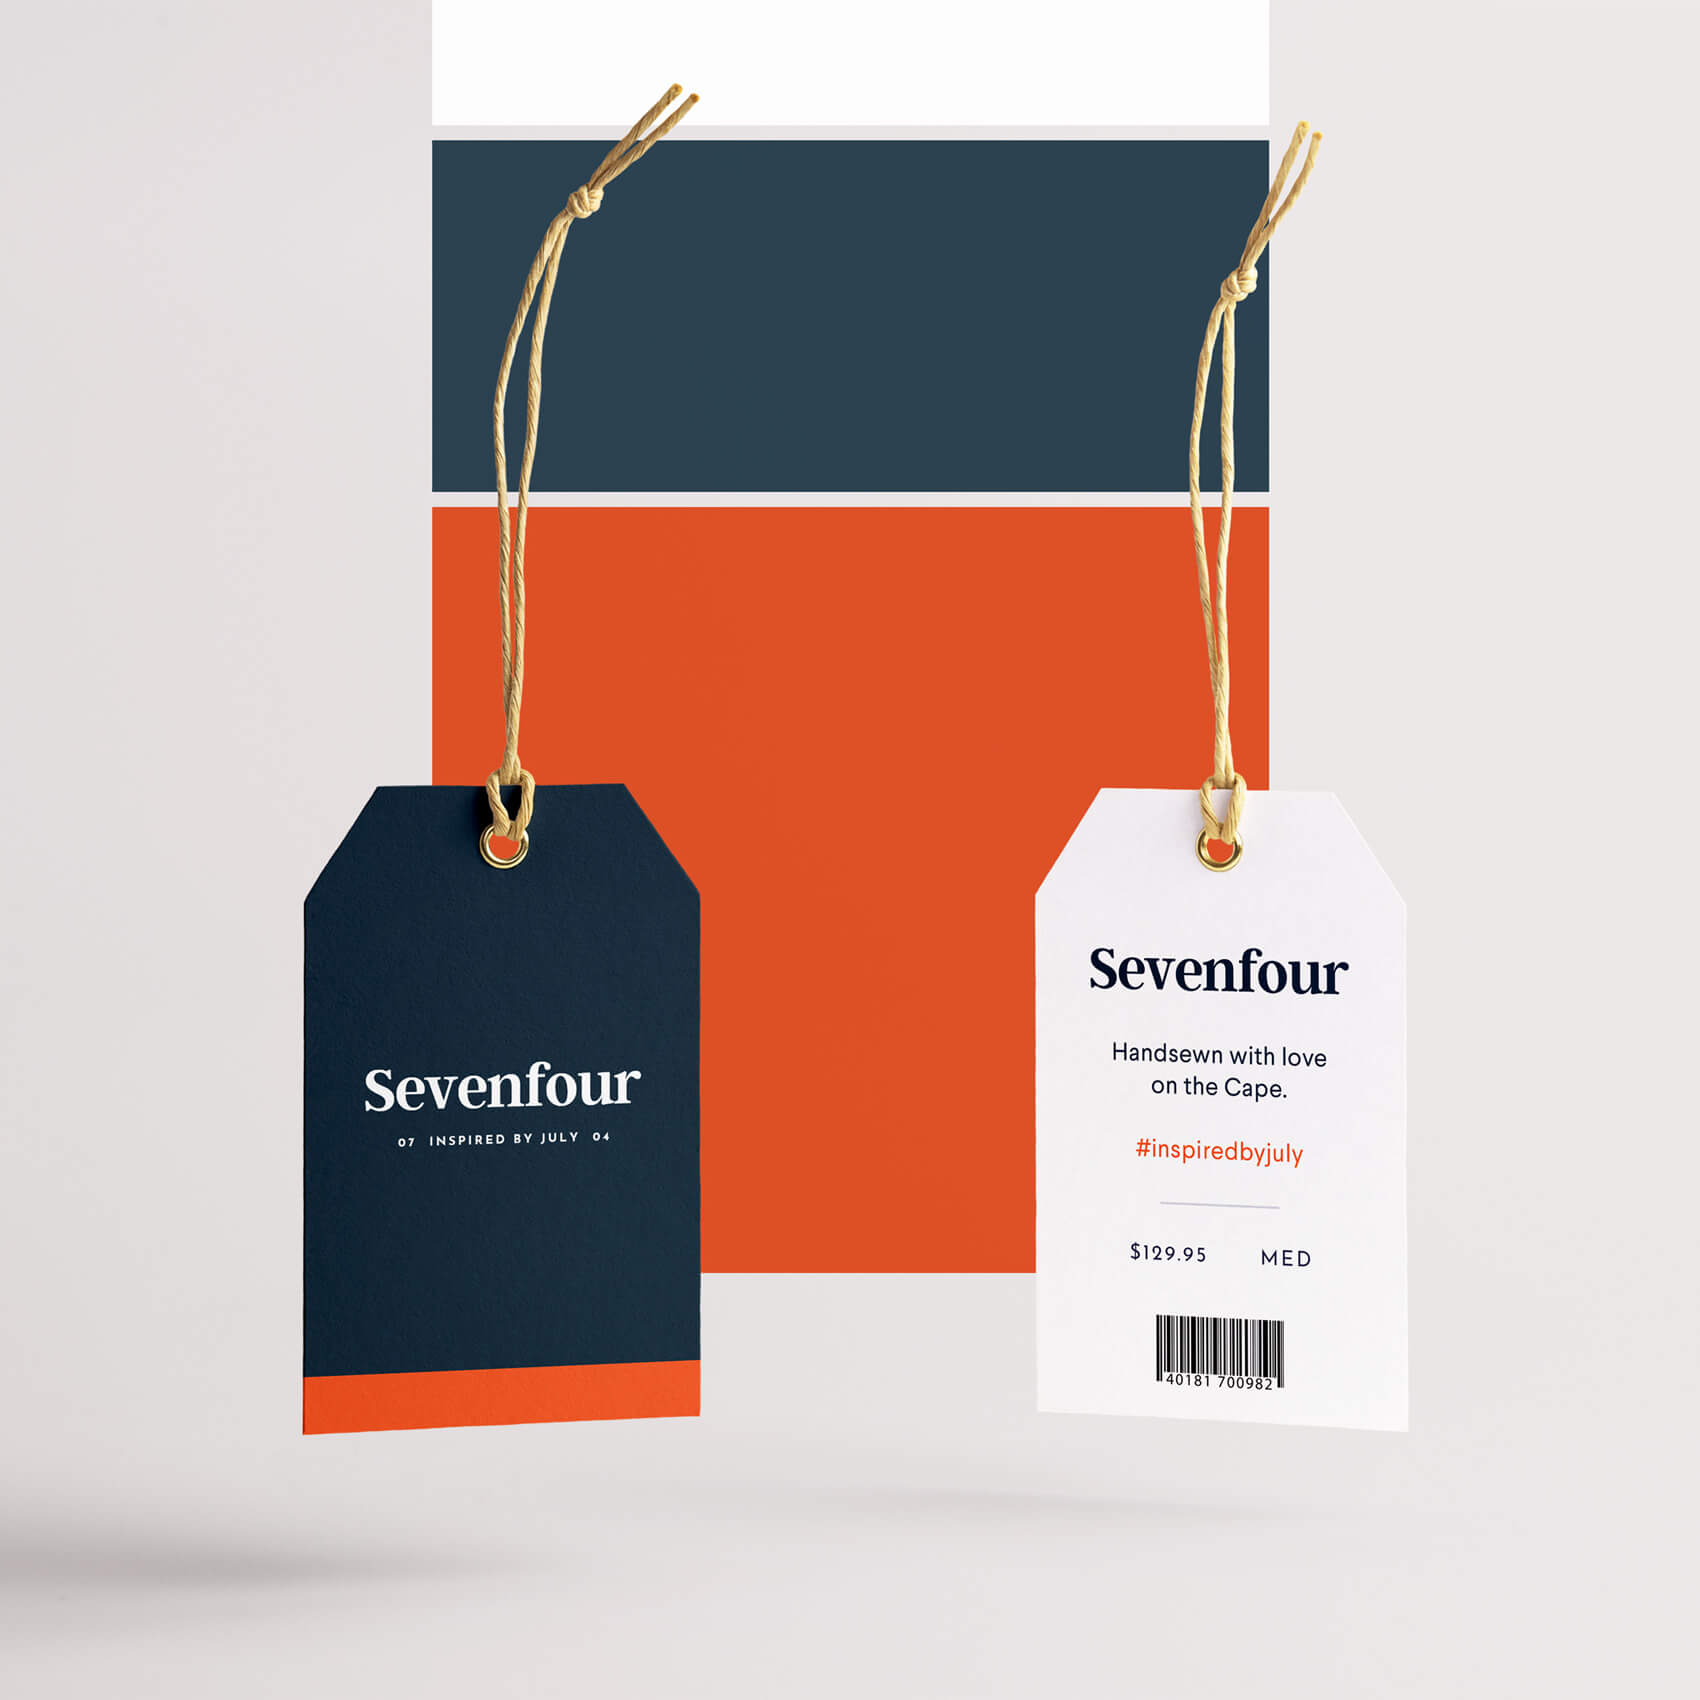 Branding and colorsClothing Tags for Sevenfour - Sevenfour's physical packaging draws on the brand's iconic navy, white, and blood orange red. Natural twine and gold eyelets ties everything back to the label's nautical roots on Cape Cod.